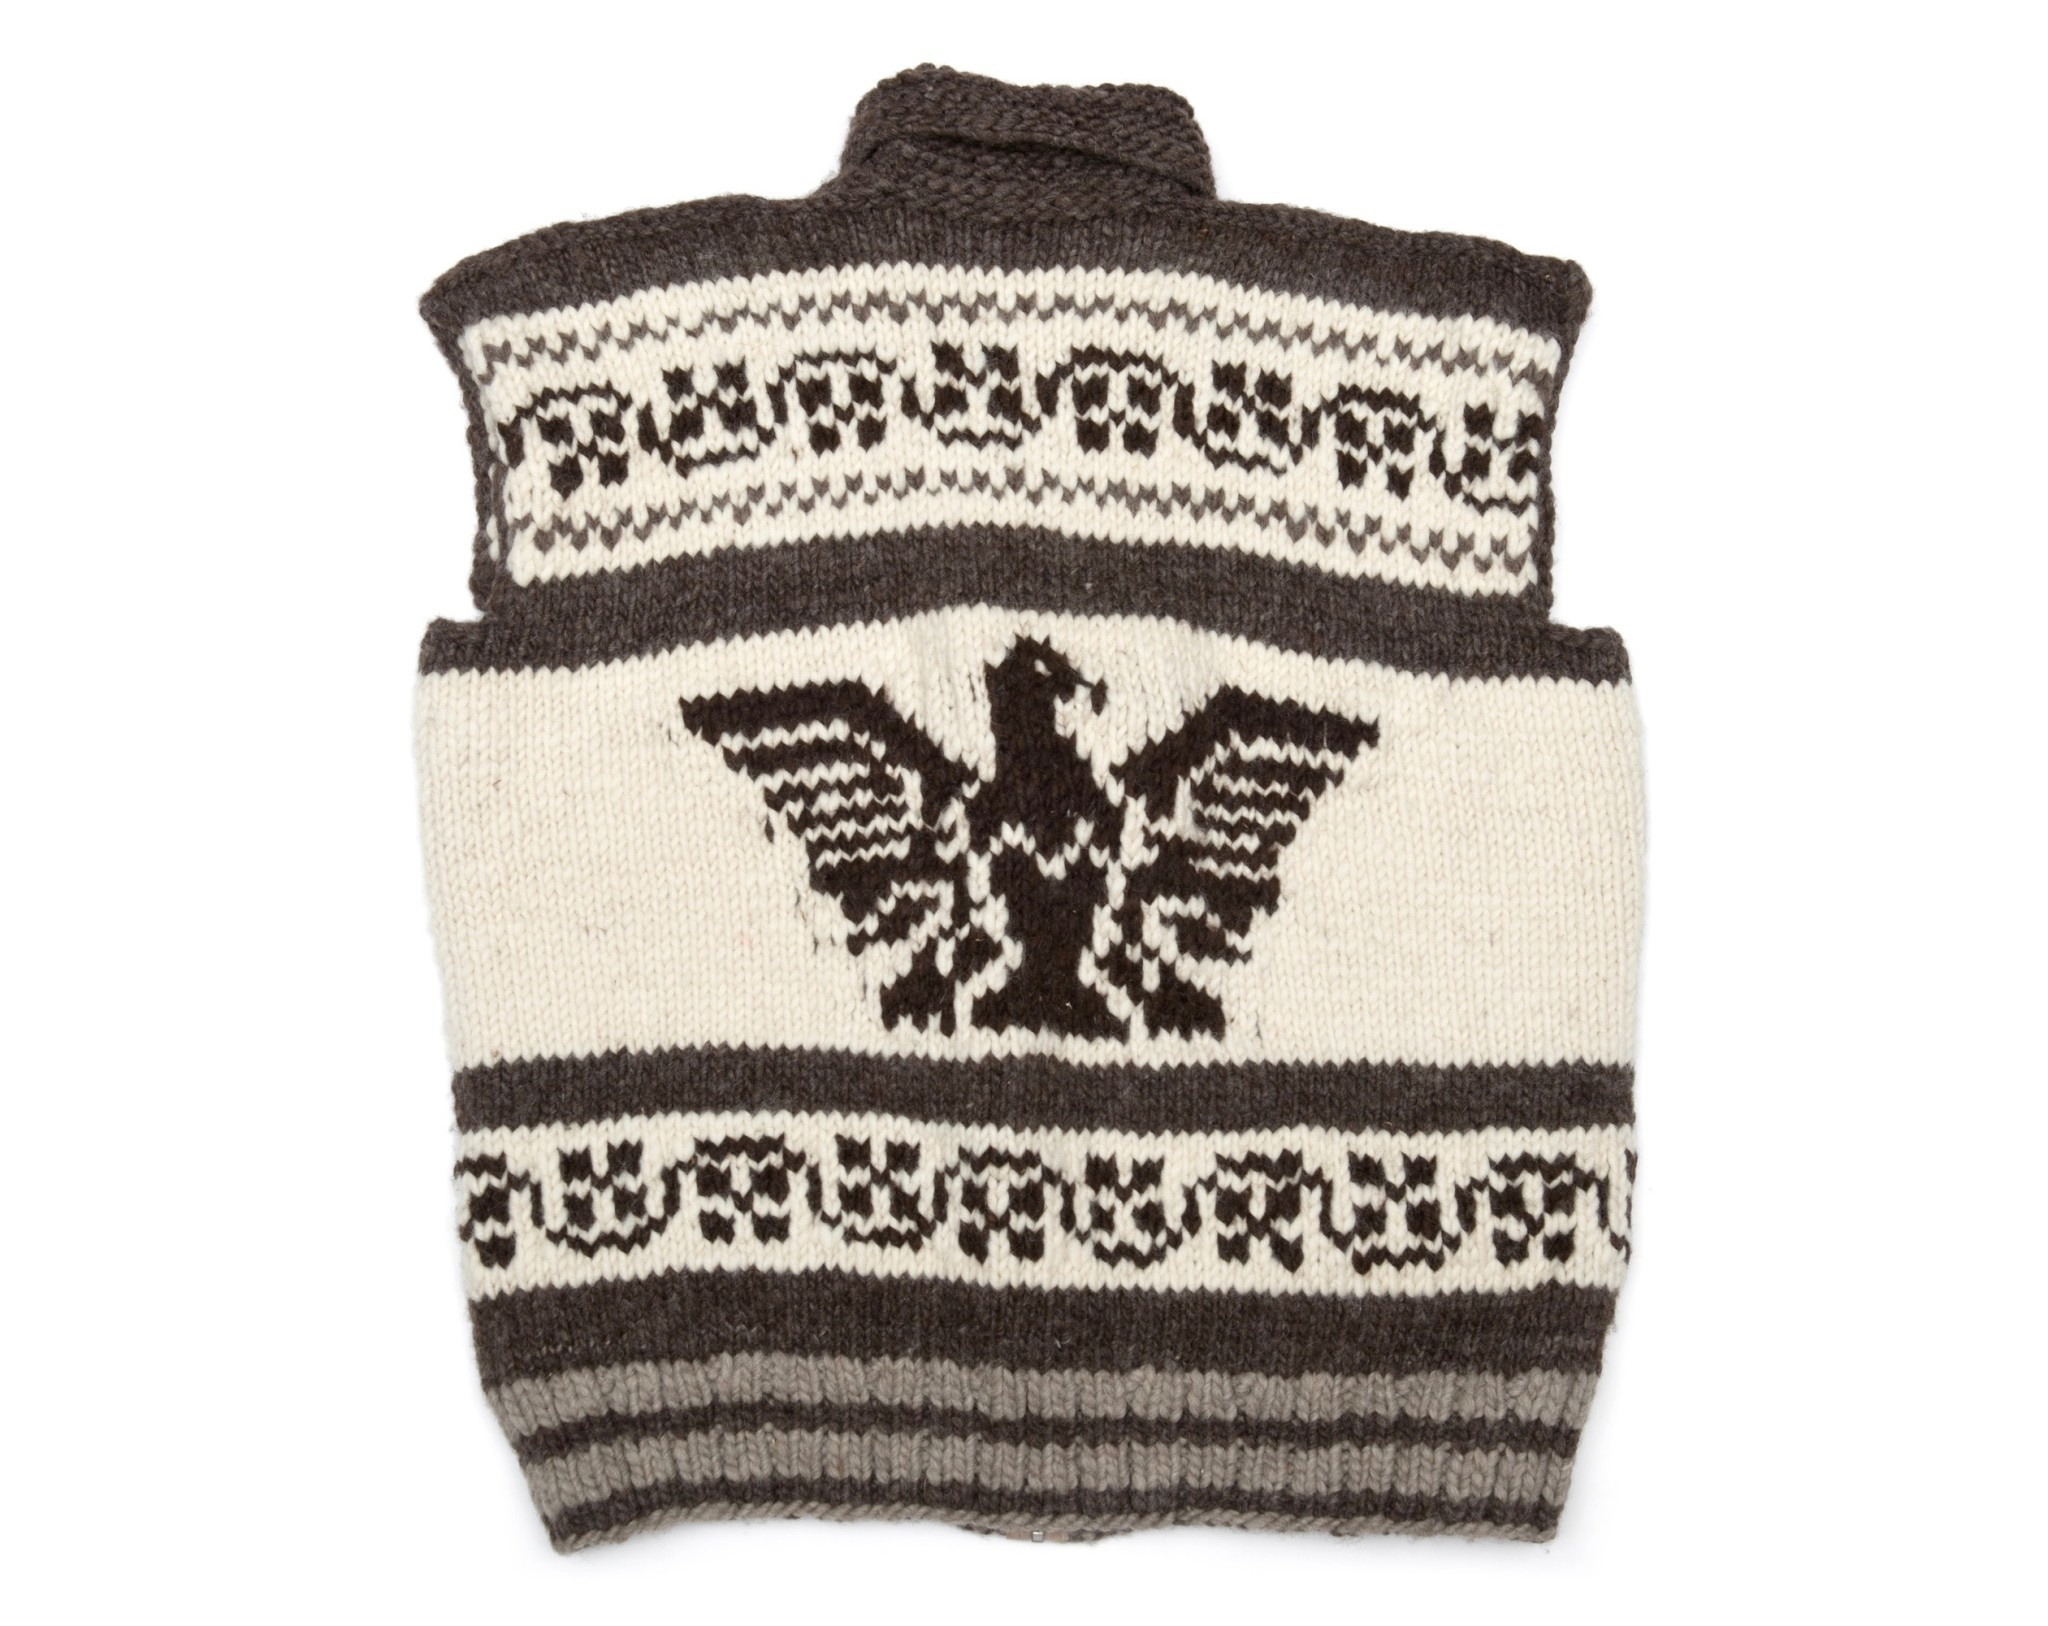 XXXL Cowichan Vest with zipper and Eagle design